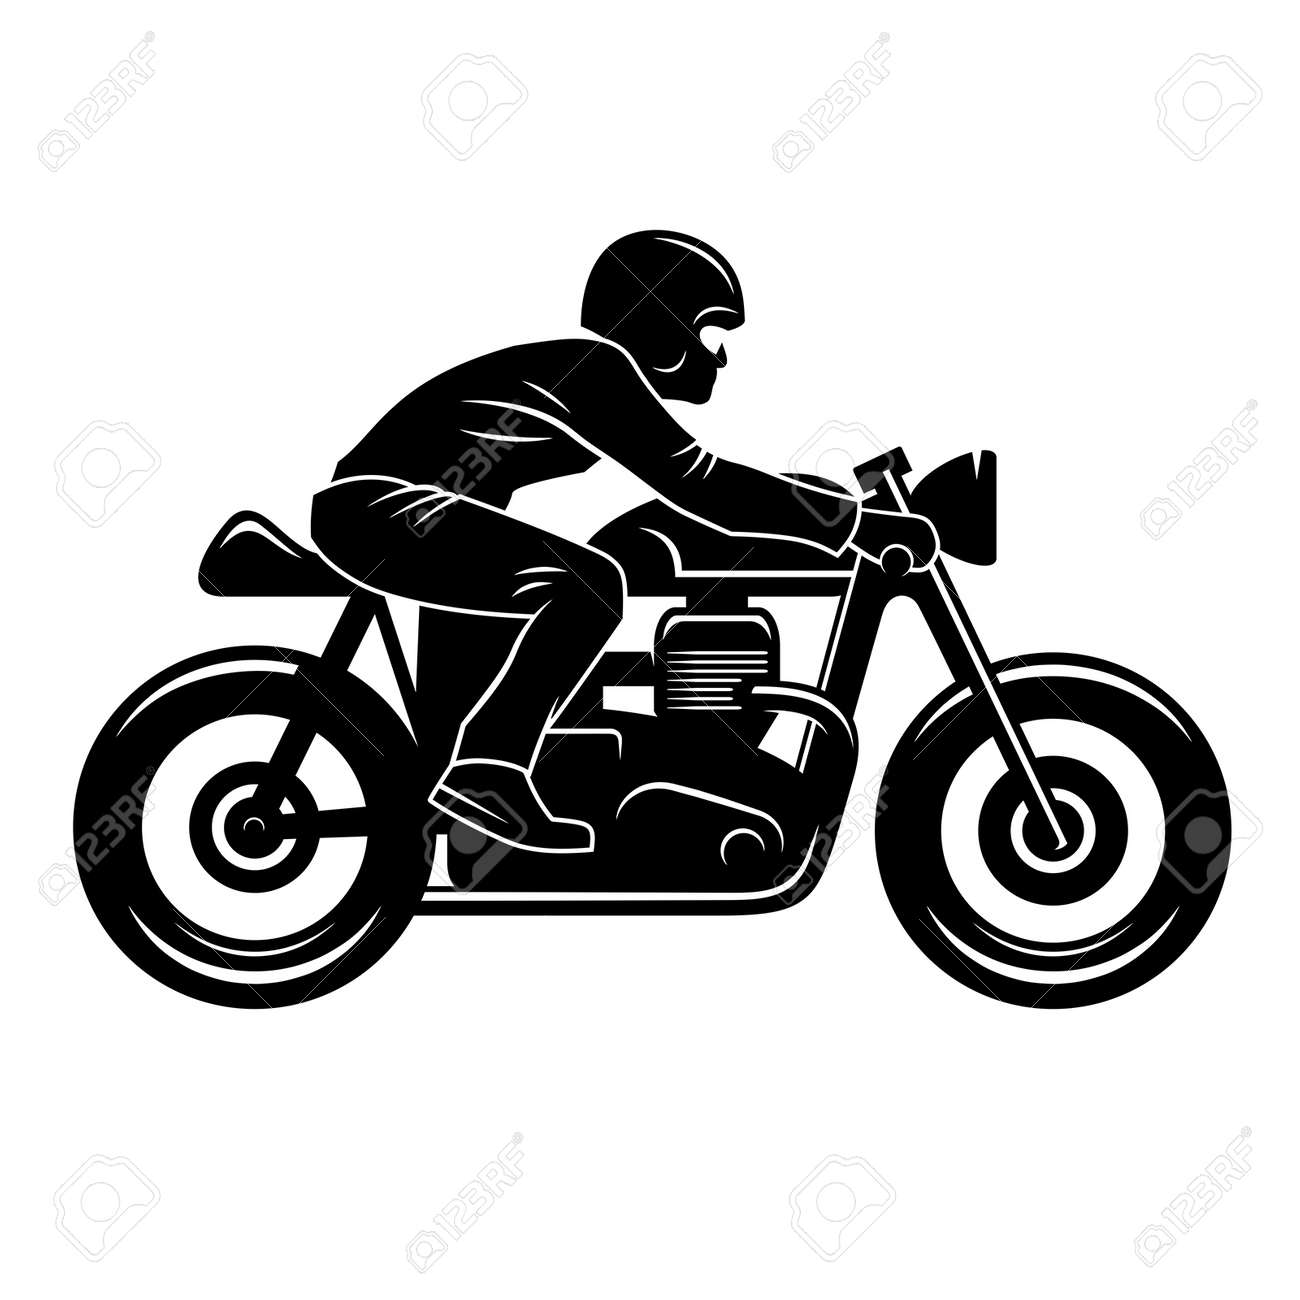 Cafe Racer silhouette isolated on white / Motorcycle rider / Vintage t-shirt graphic design / Tee graphics - 69824510